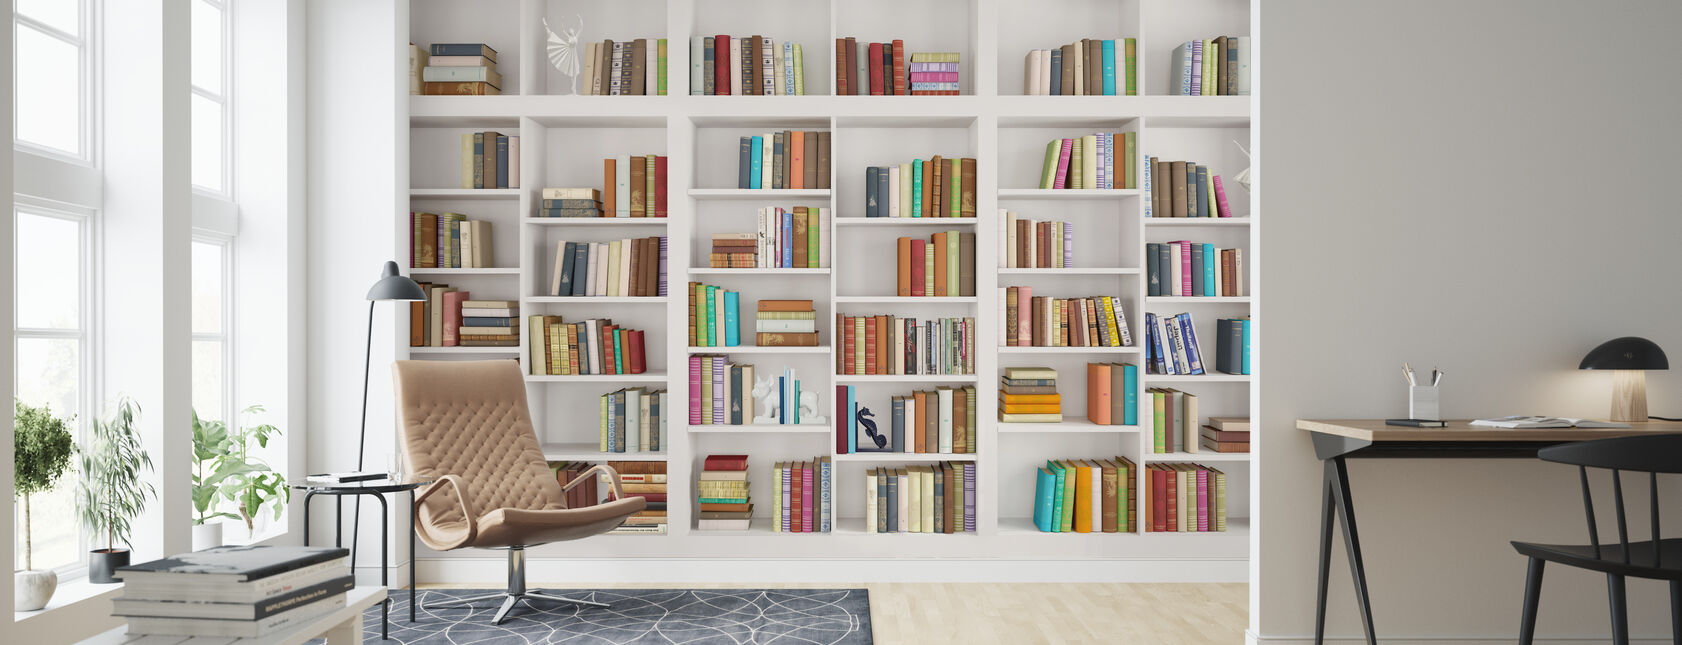 White Bookshelf - Wallpaper - Living Room